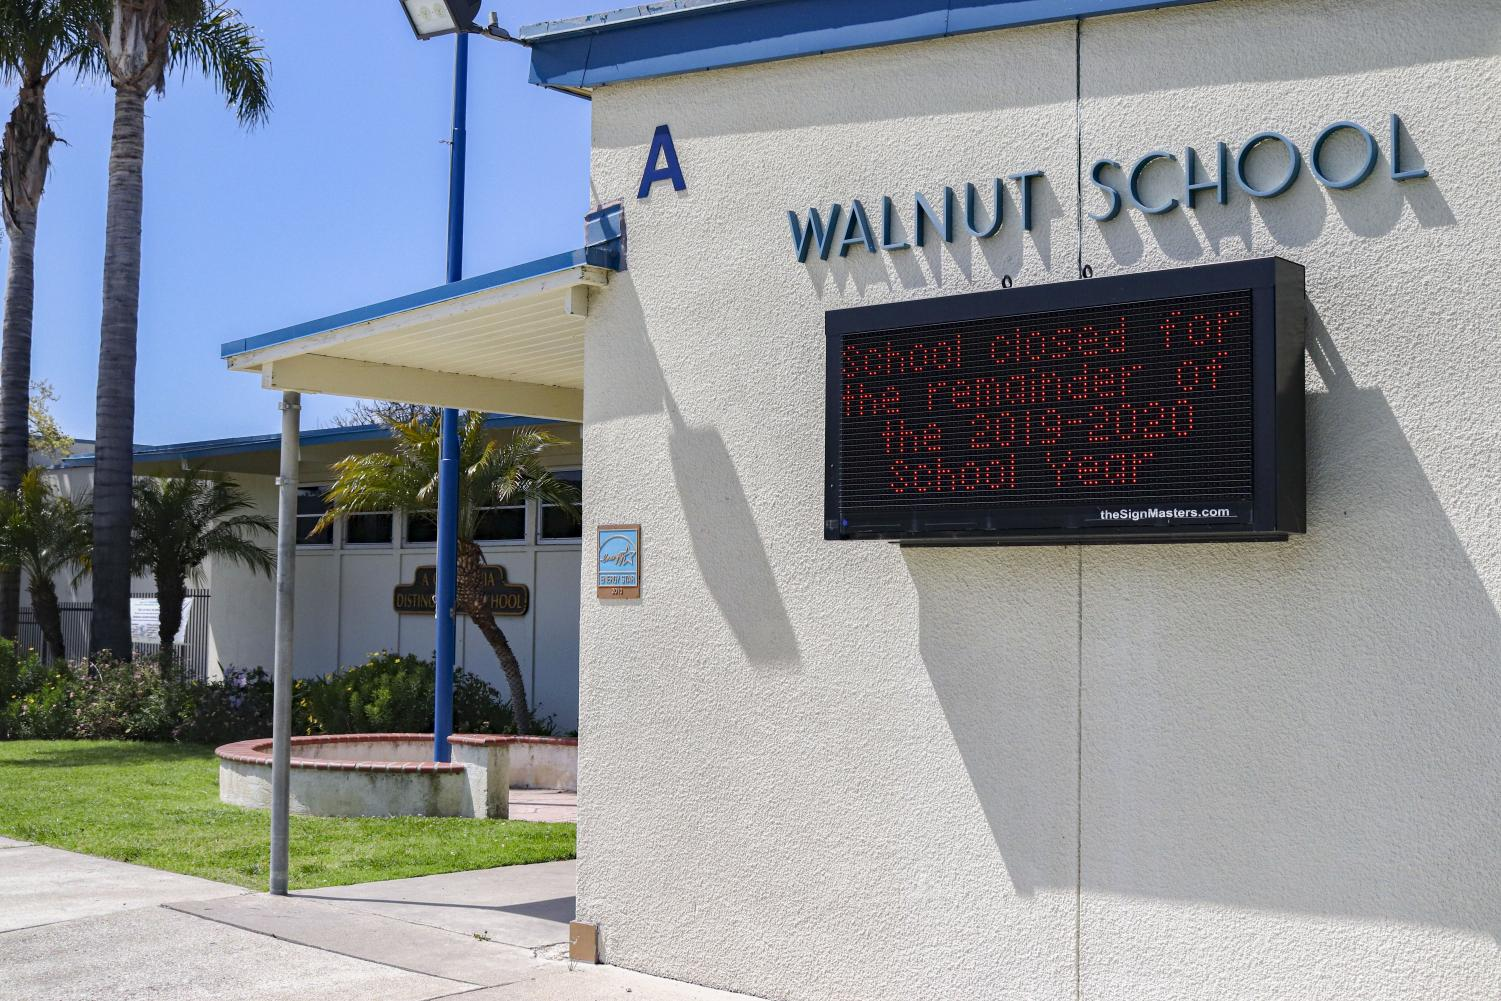 Walnut Elementary School in Newbury Park, Calif. remains closed on Friday, April 3, due to COVID-19 and order from Ventura County Office of Education.